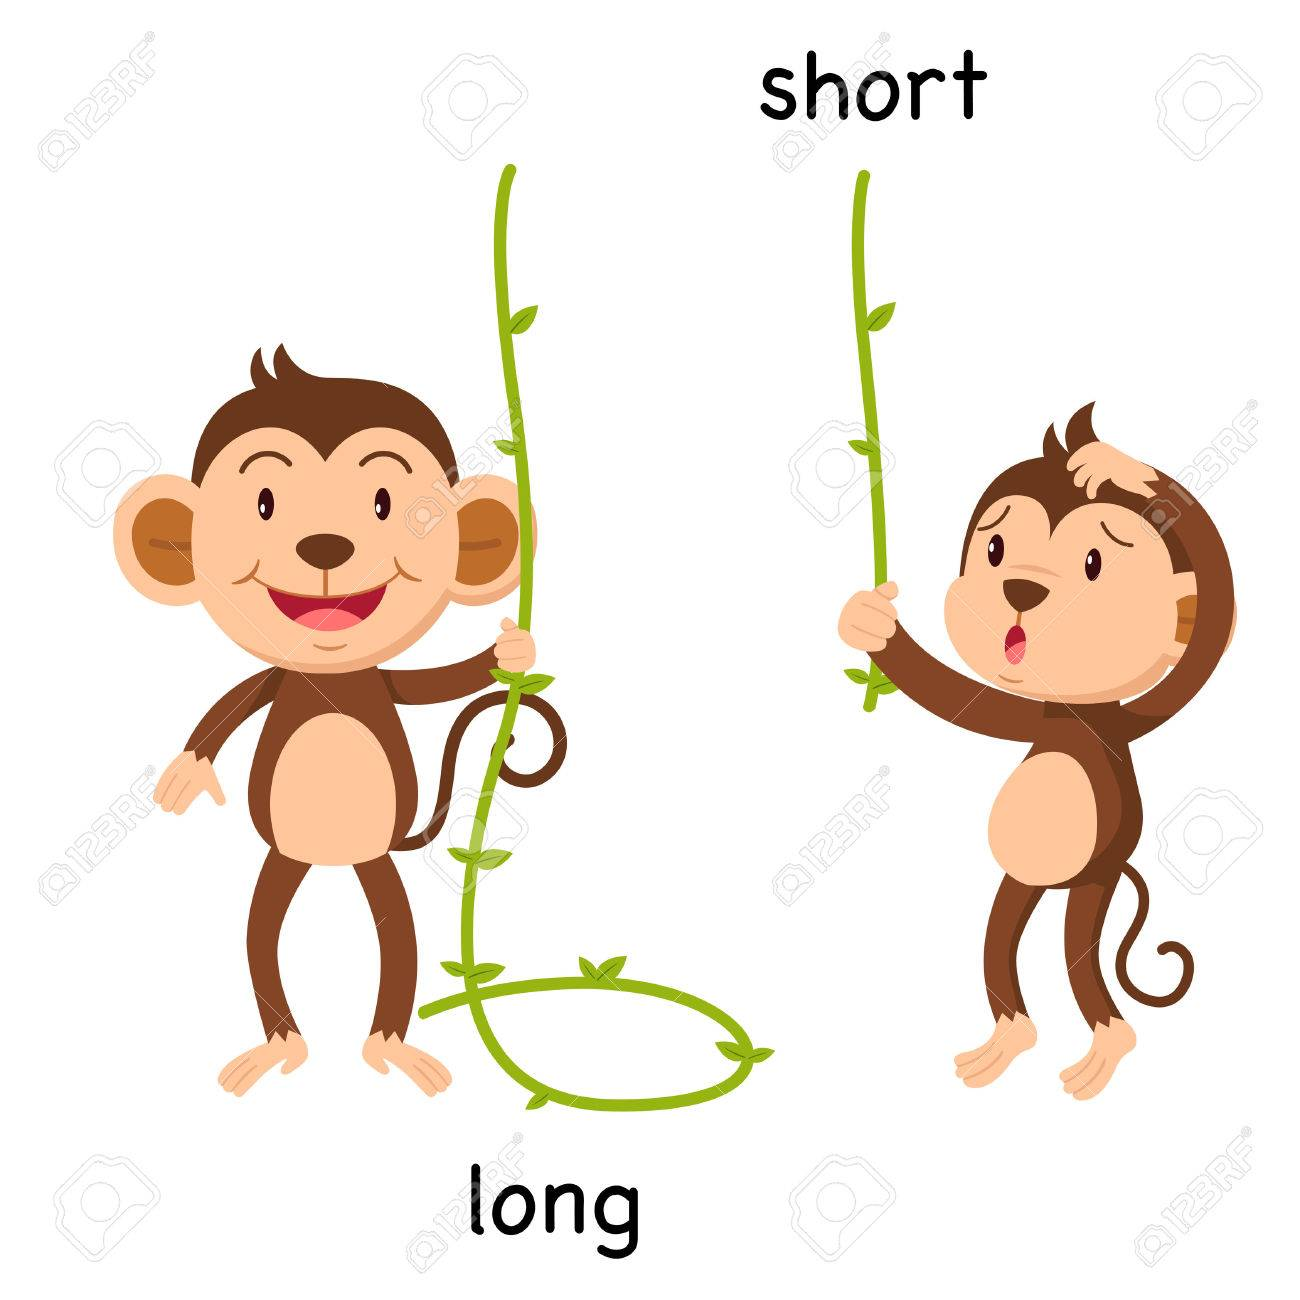 Opposite long and short vector illustration.